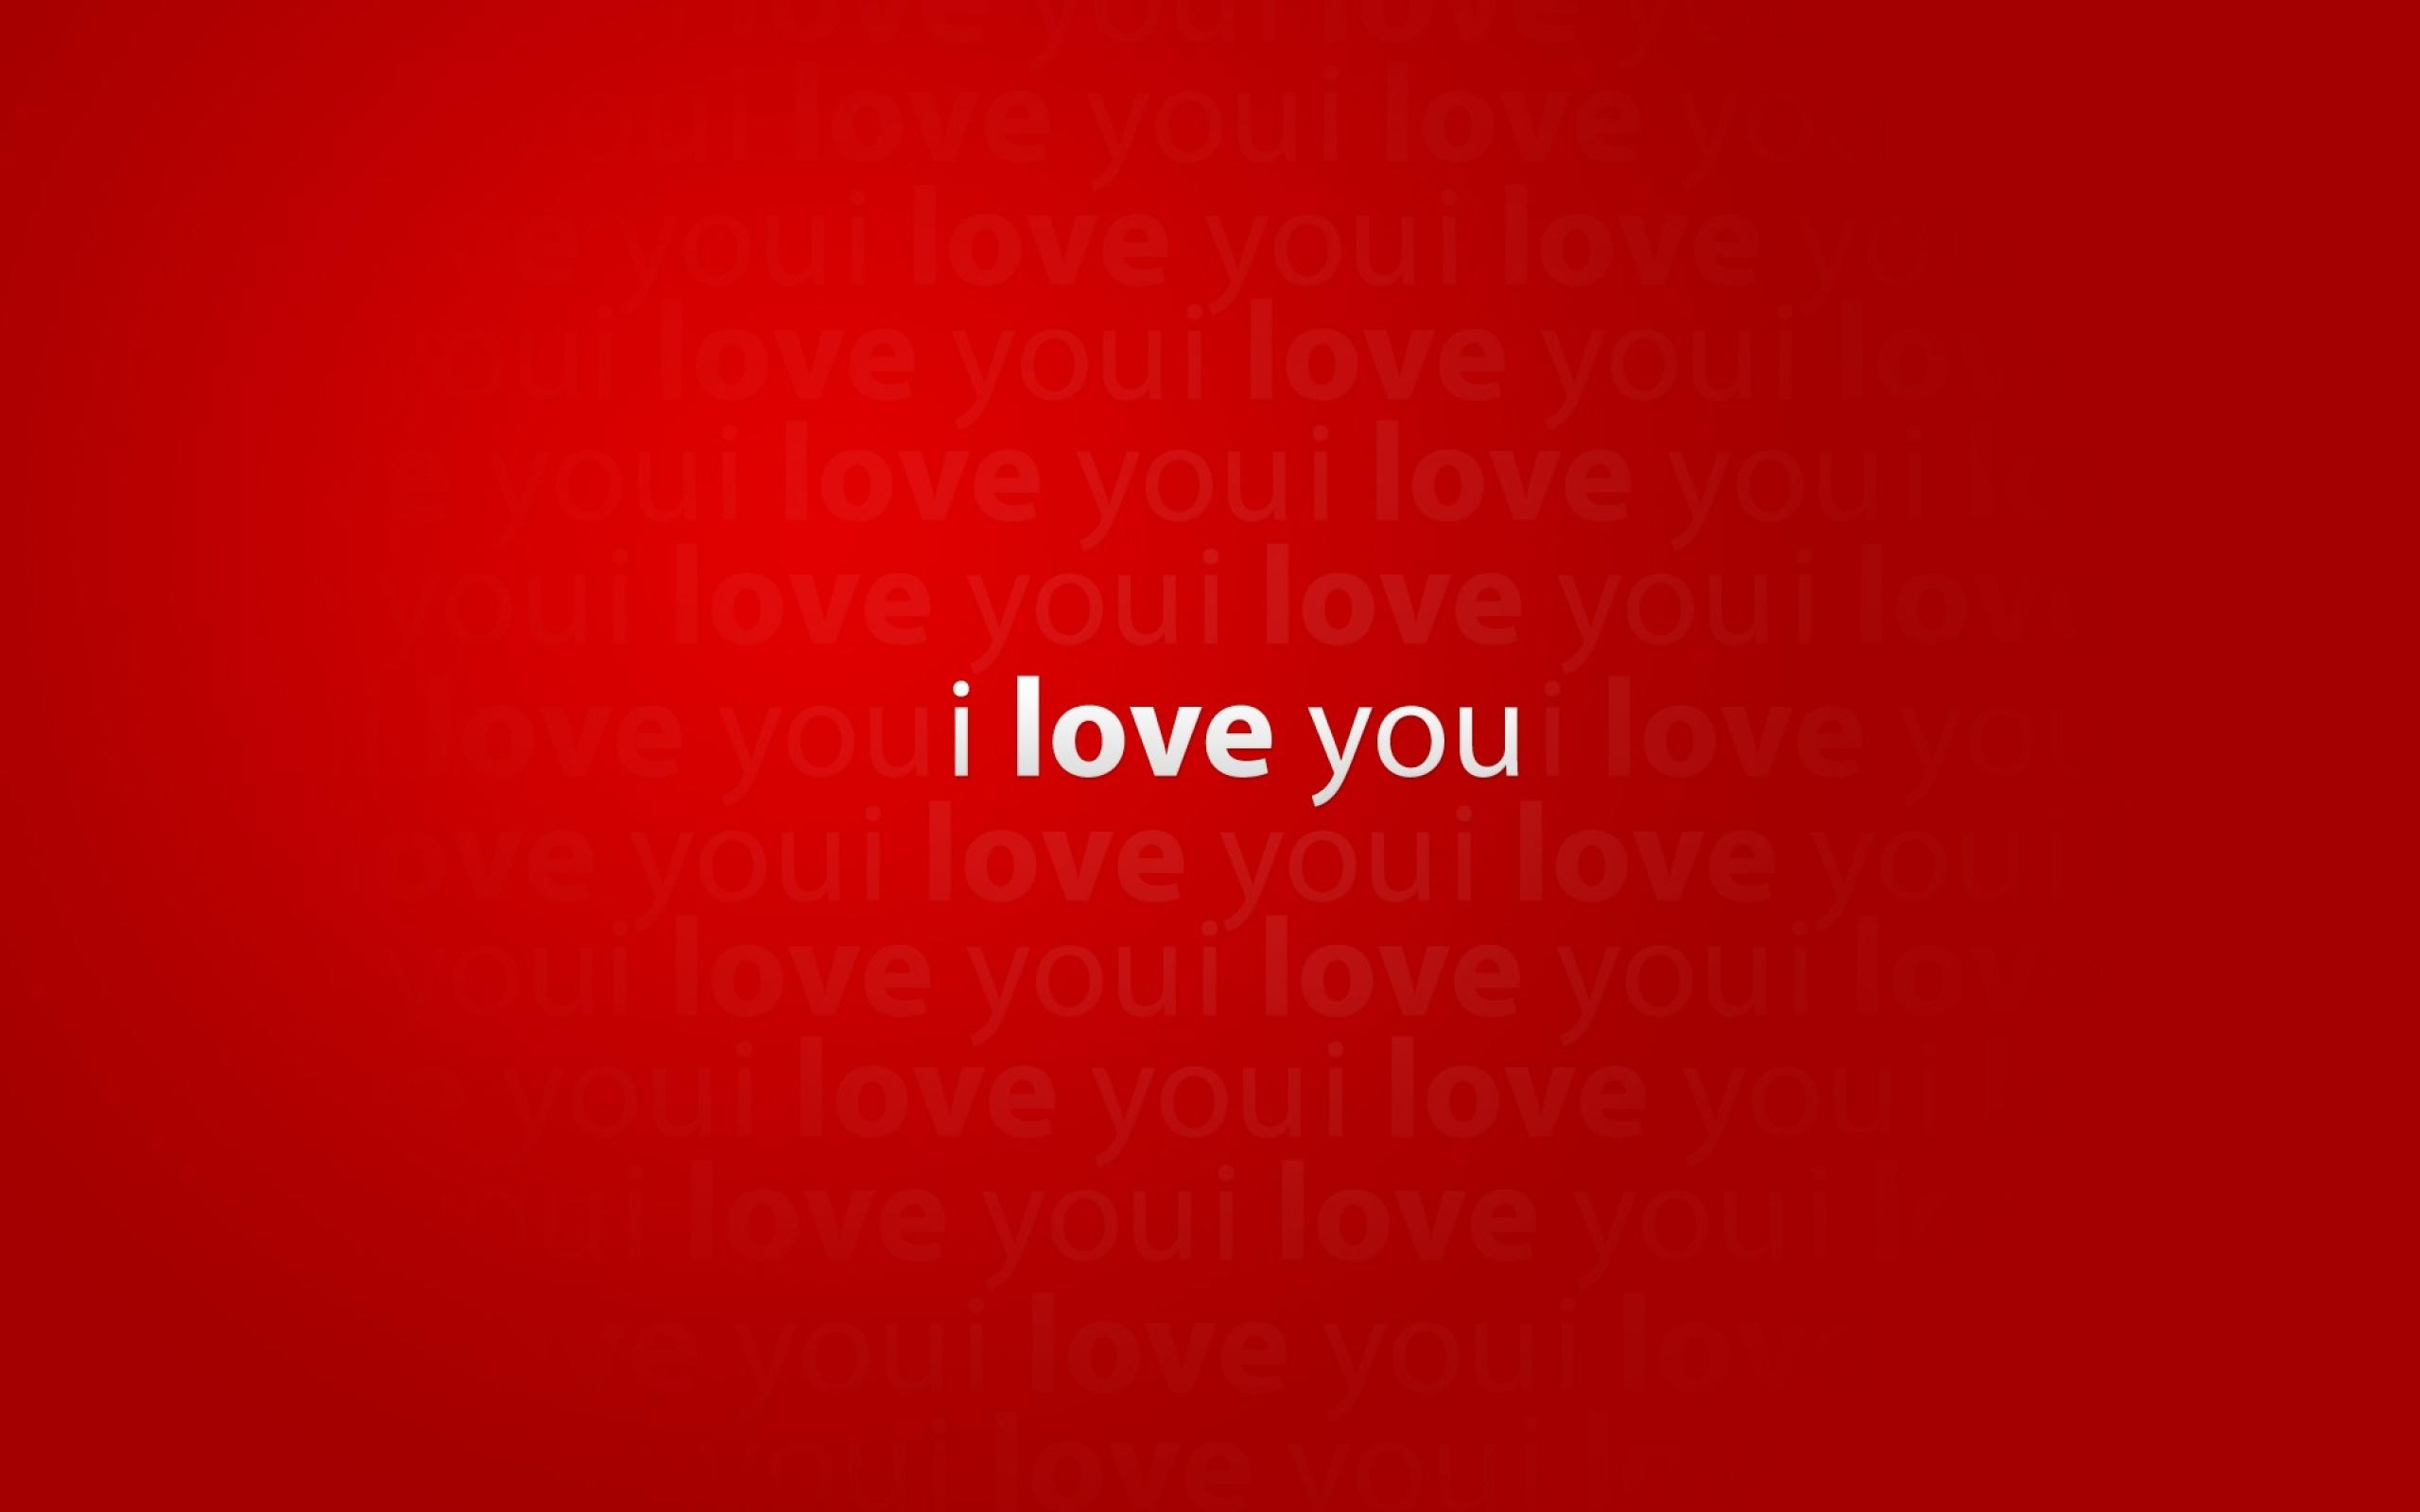 Wonderful Wallpaper Name Neha - Vishal-Name-Love-Wallpaper-4  Perfect Image Reference_113110.jpeg